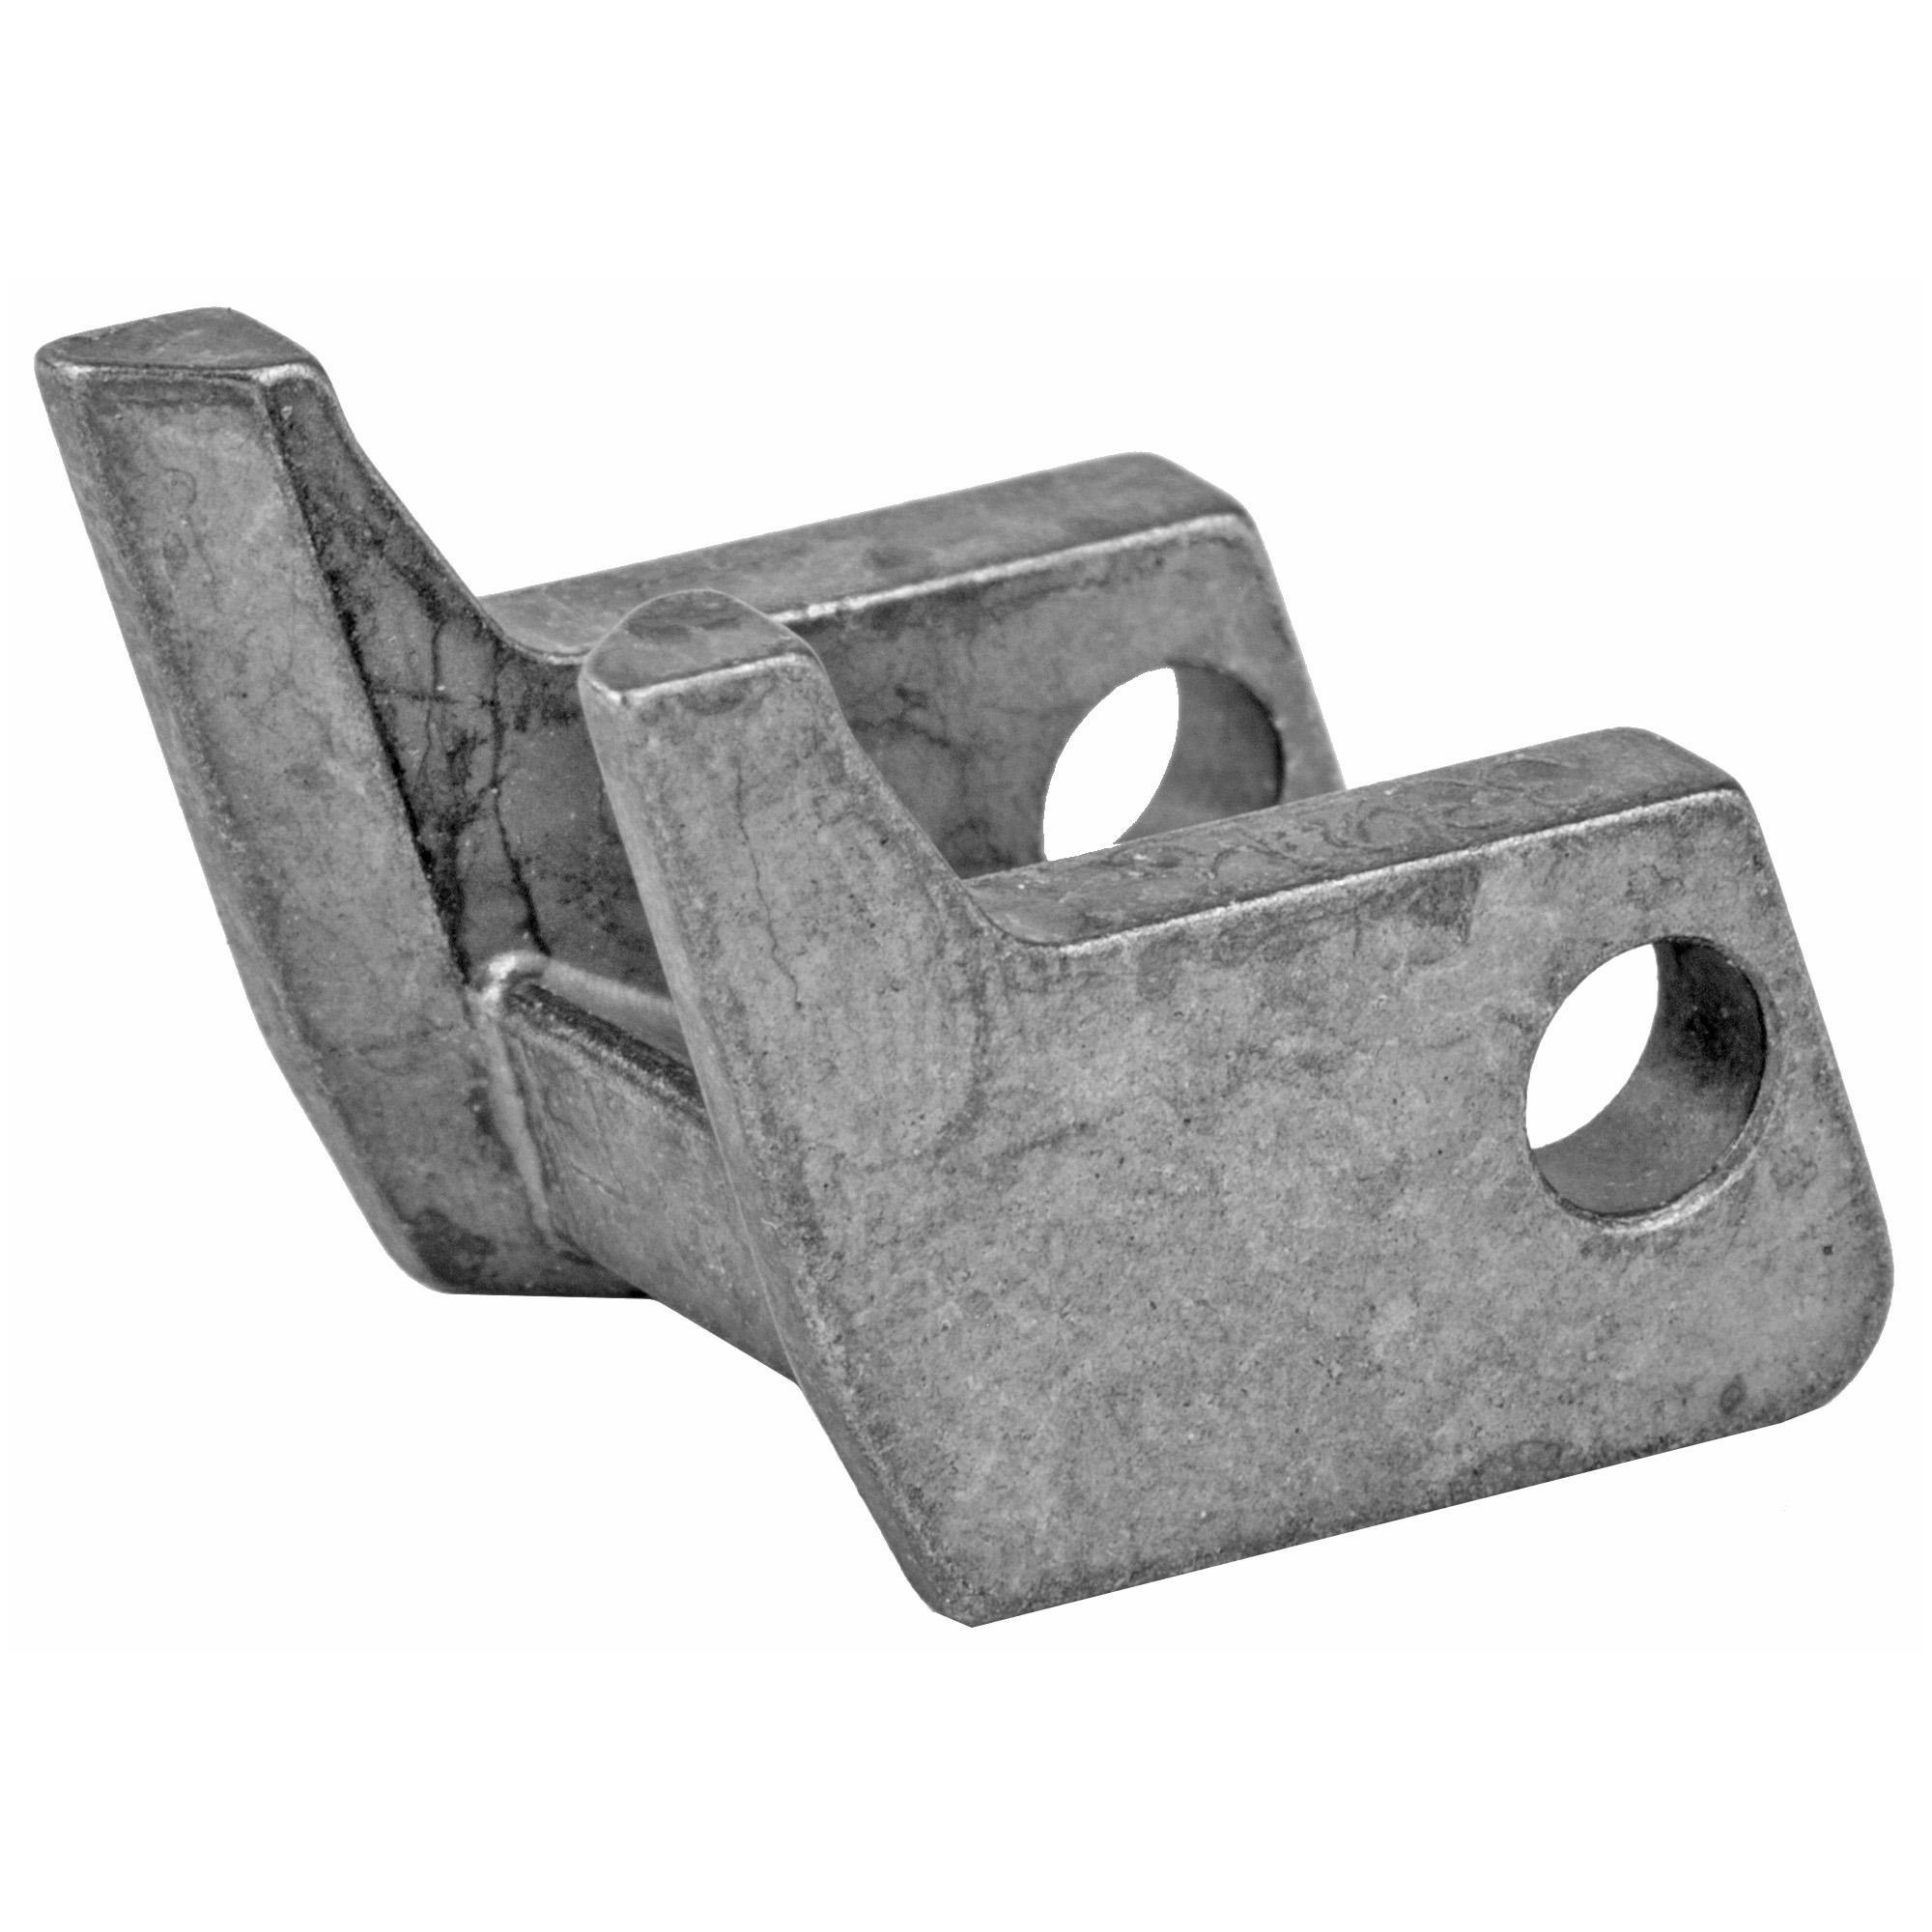 Glock Locking Block - G42, G43, G43X, G48